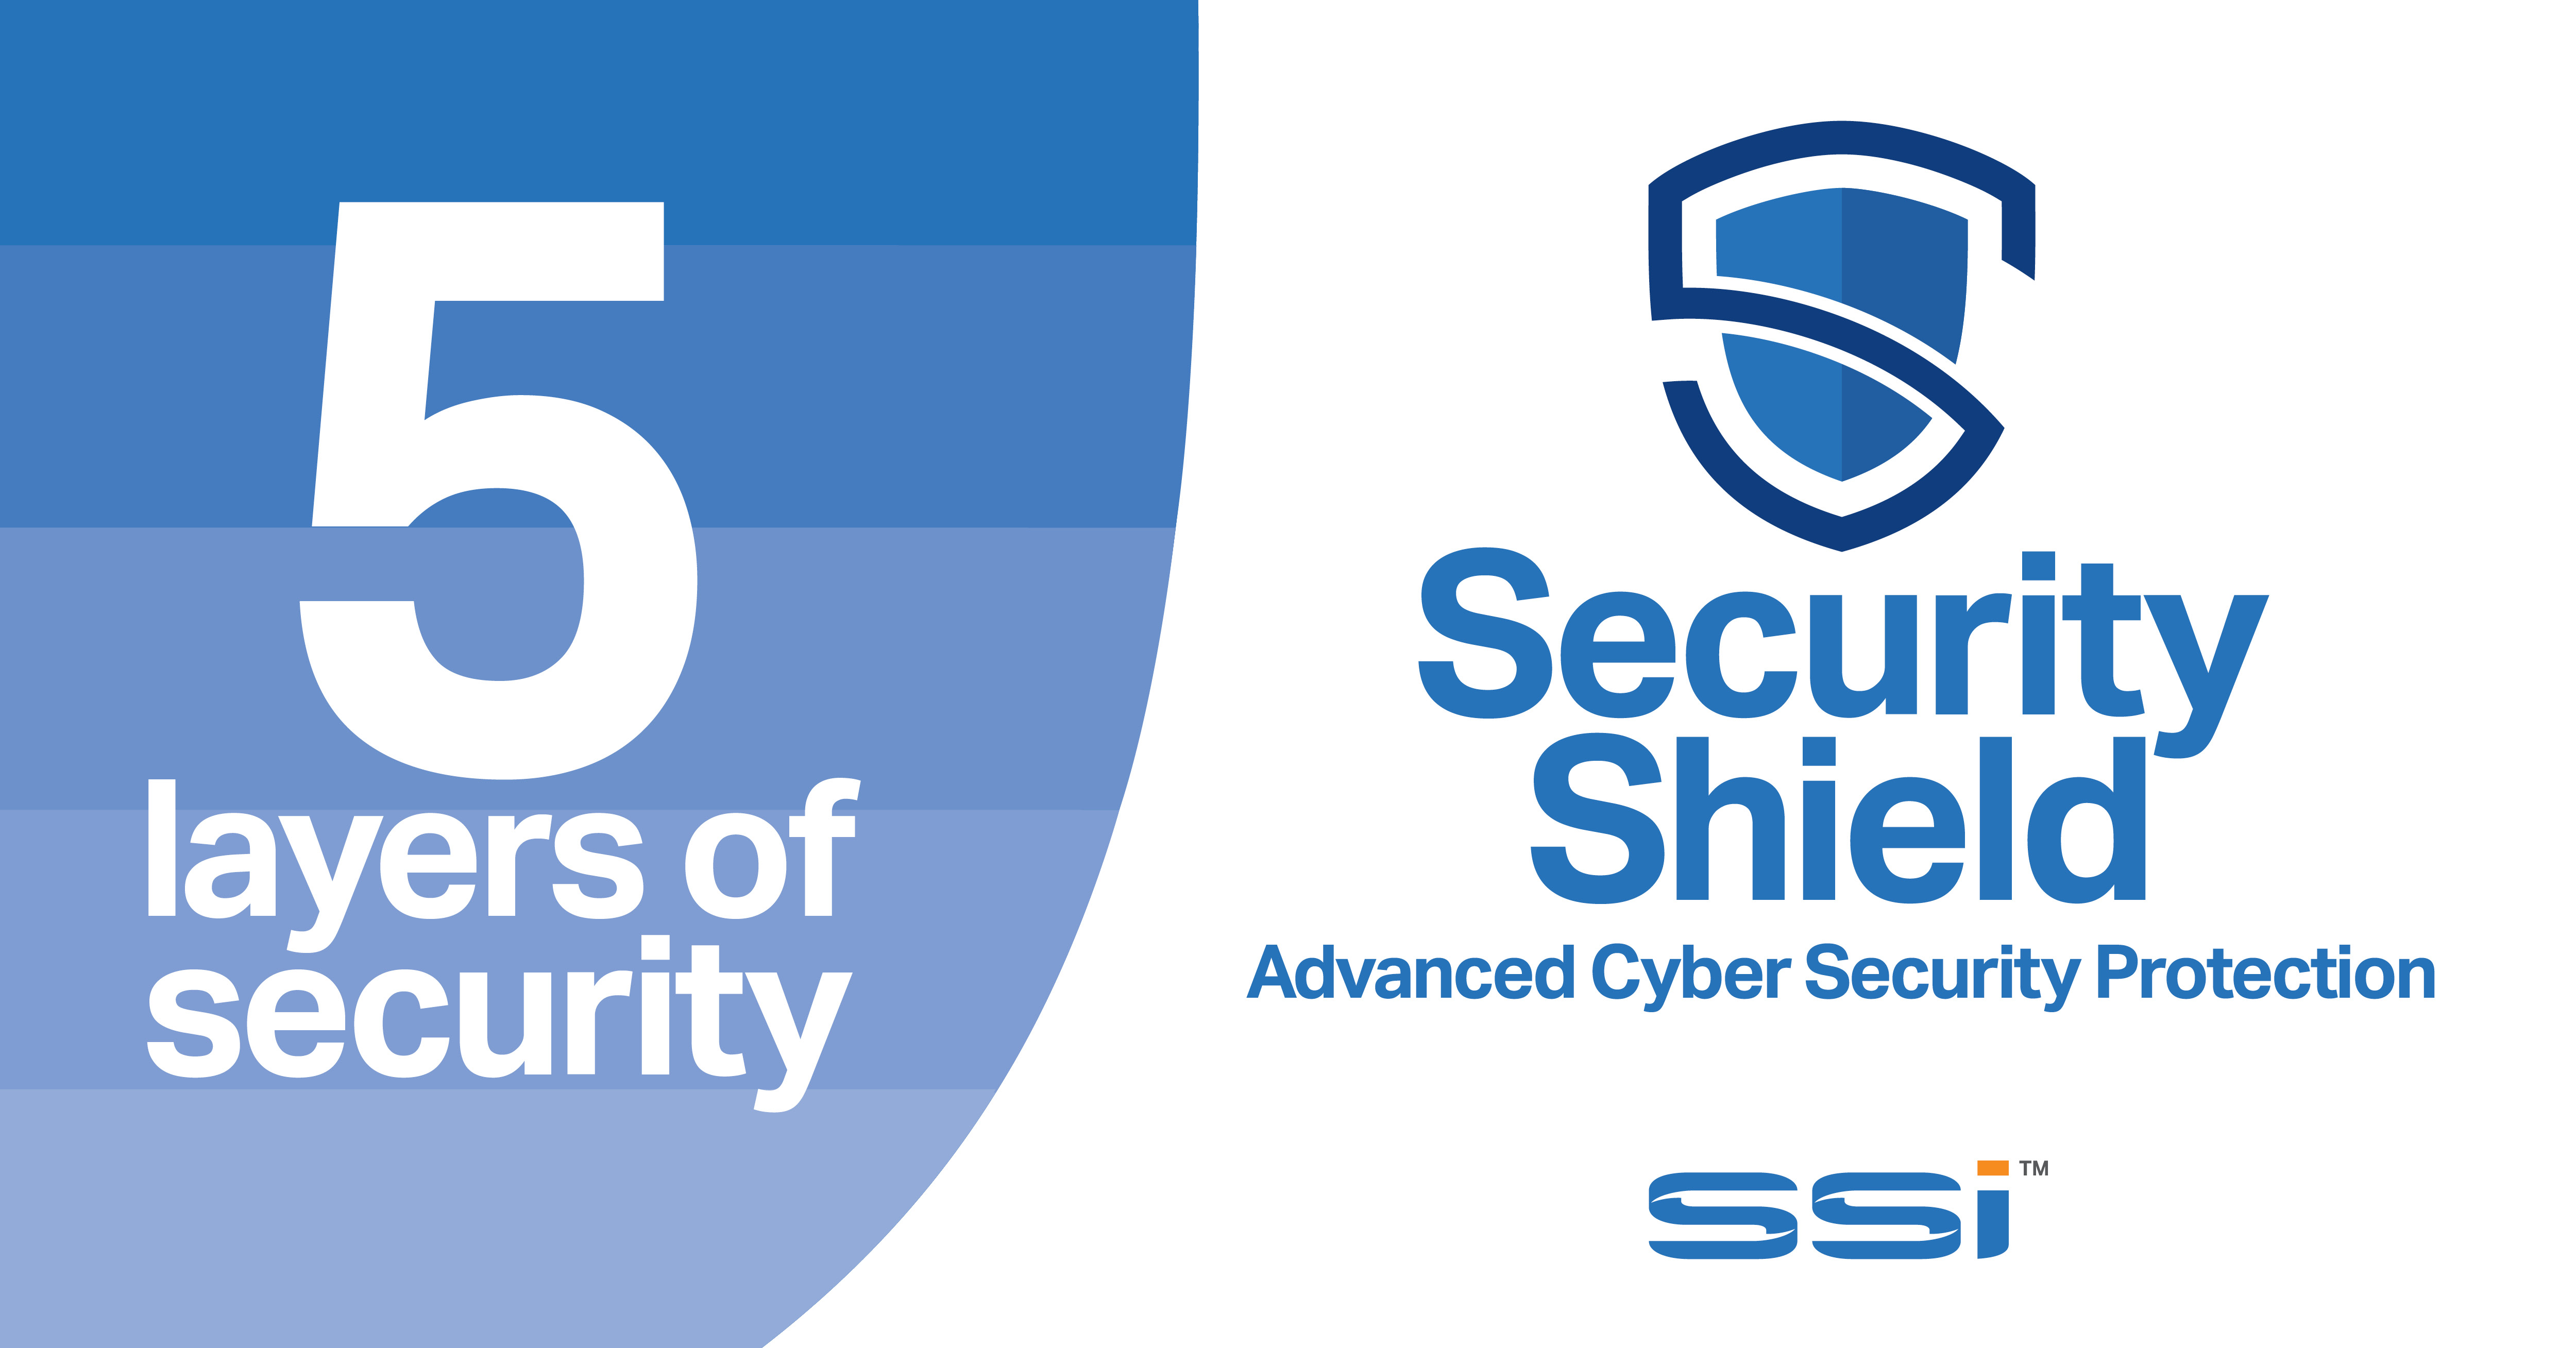 What are the 5 Layers of Security?